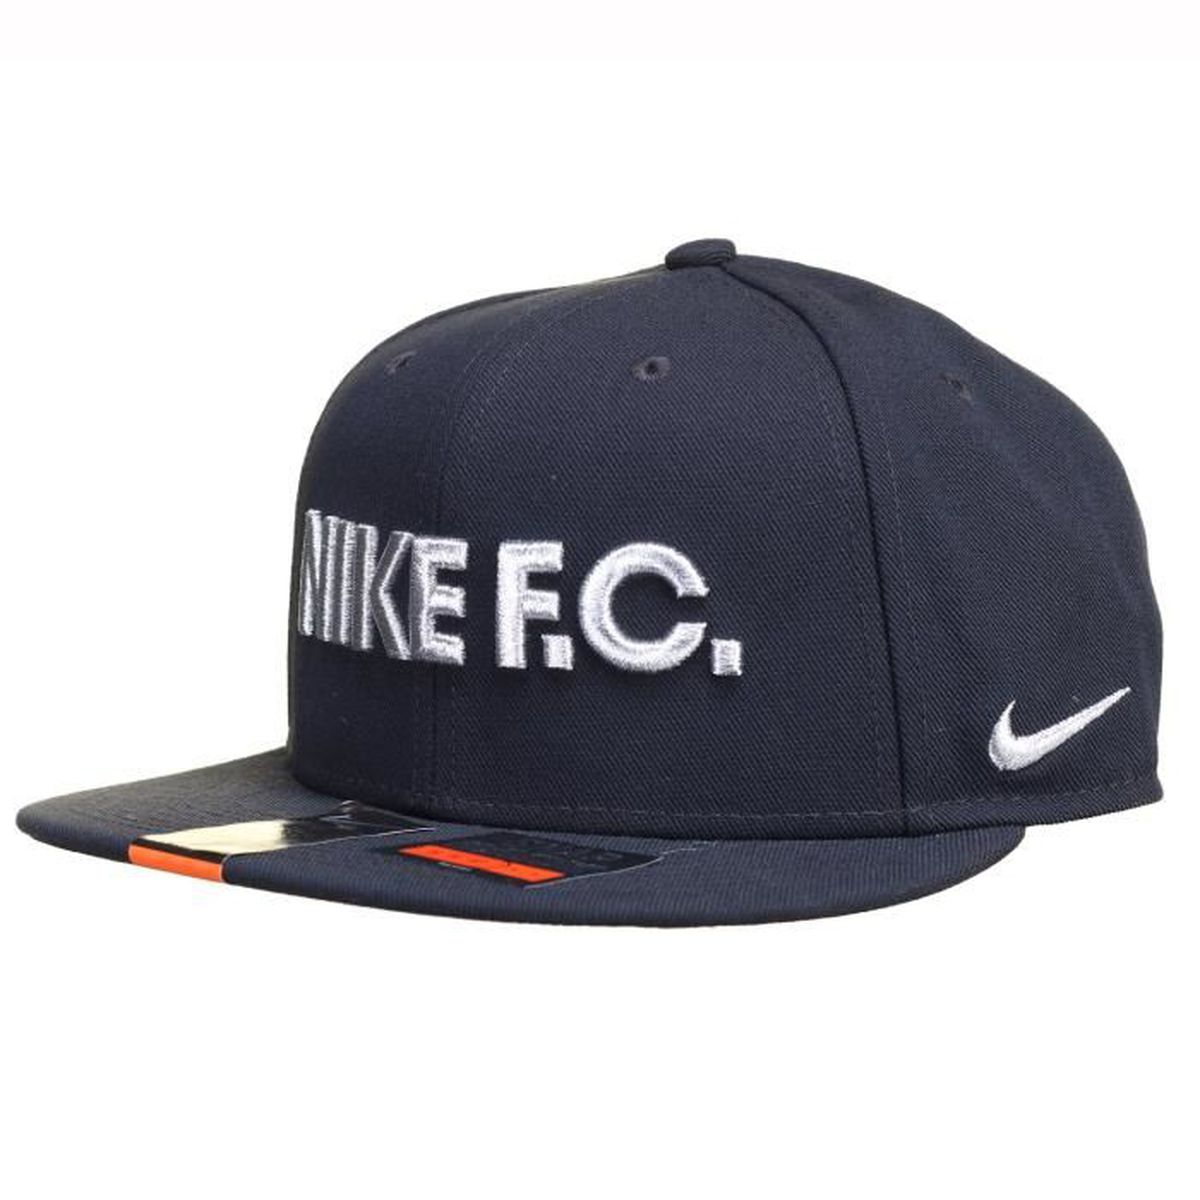 reasonably priced exclusive shoes reasonable price Casquette Nike 728922 010 Noir - Achat / Vente casquette ...